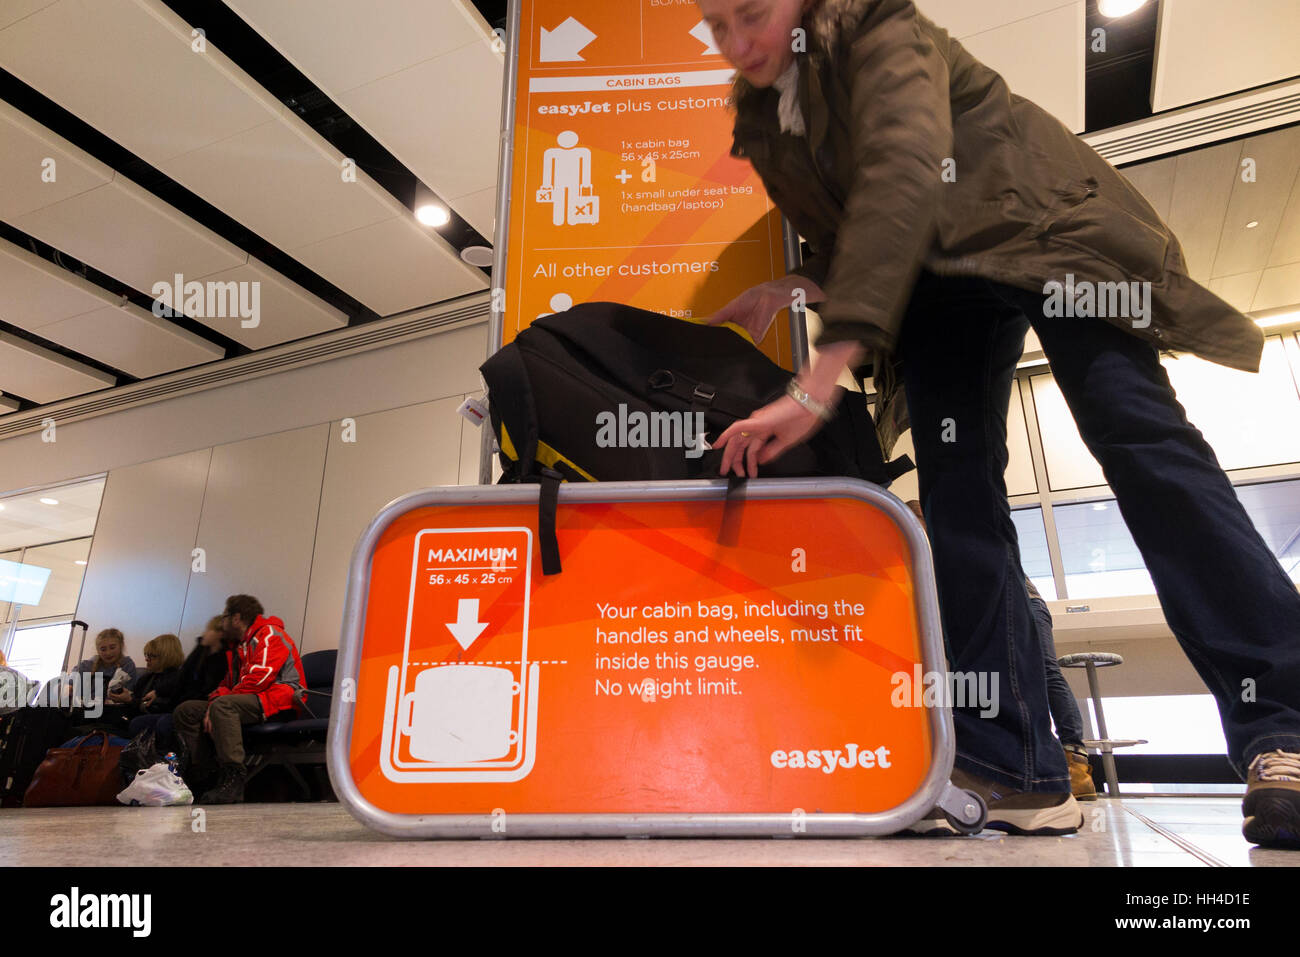 What Size Is A Carry On Bag For Airlines